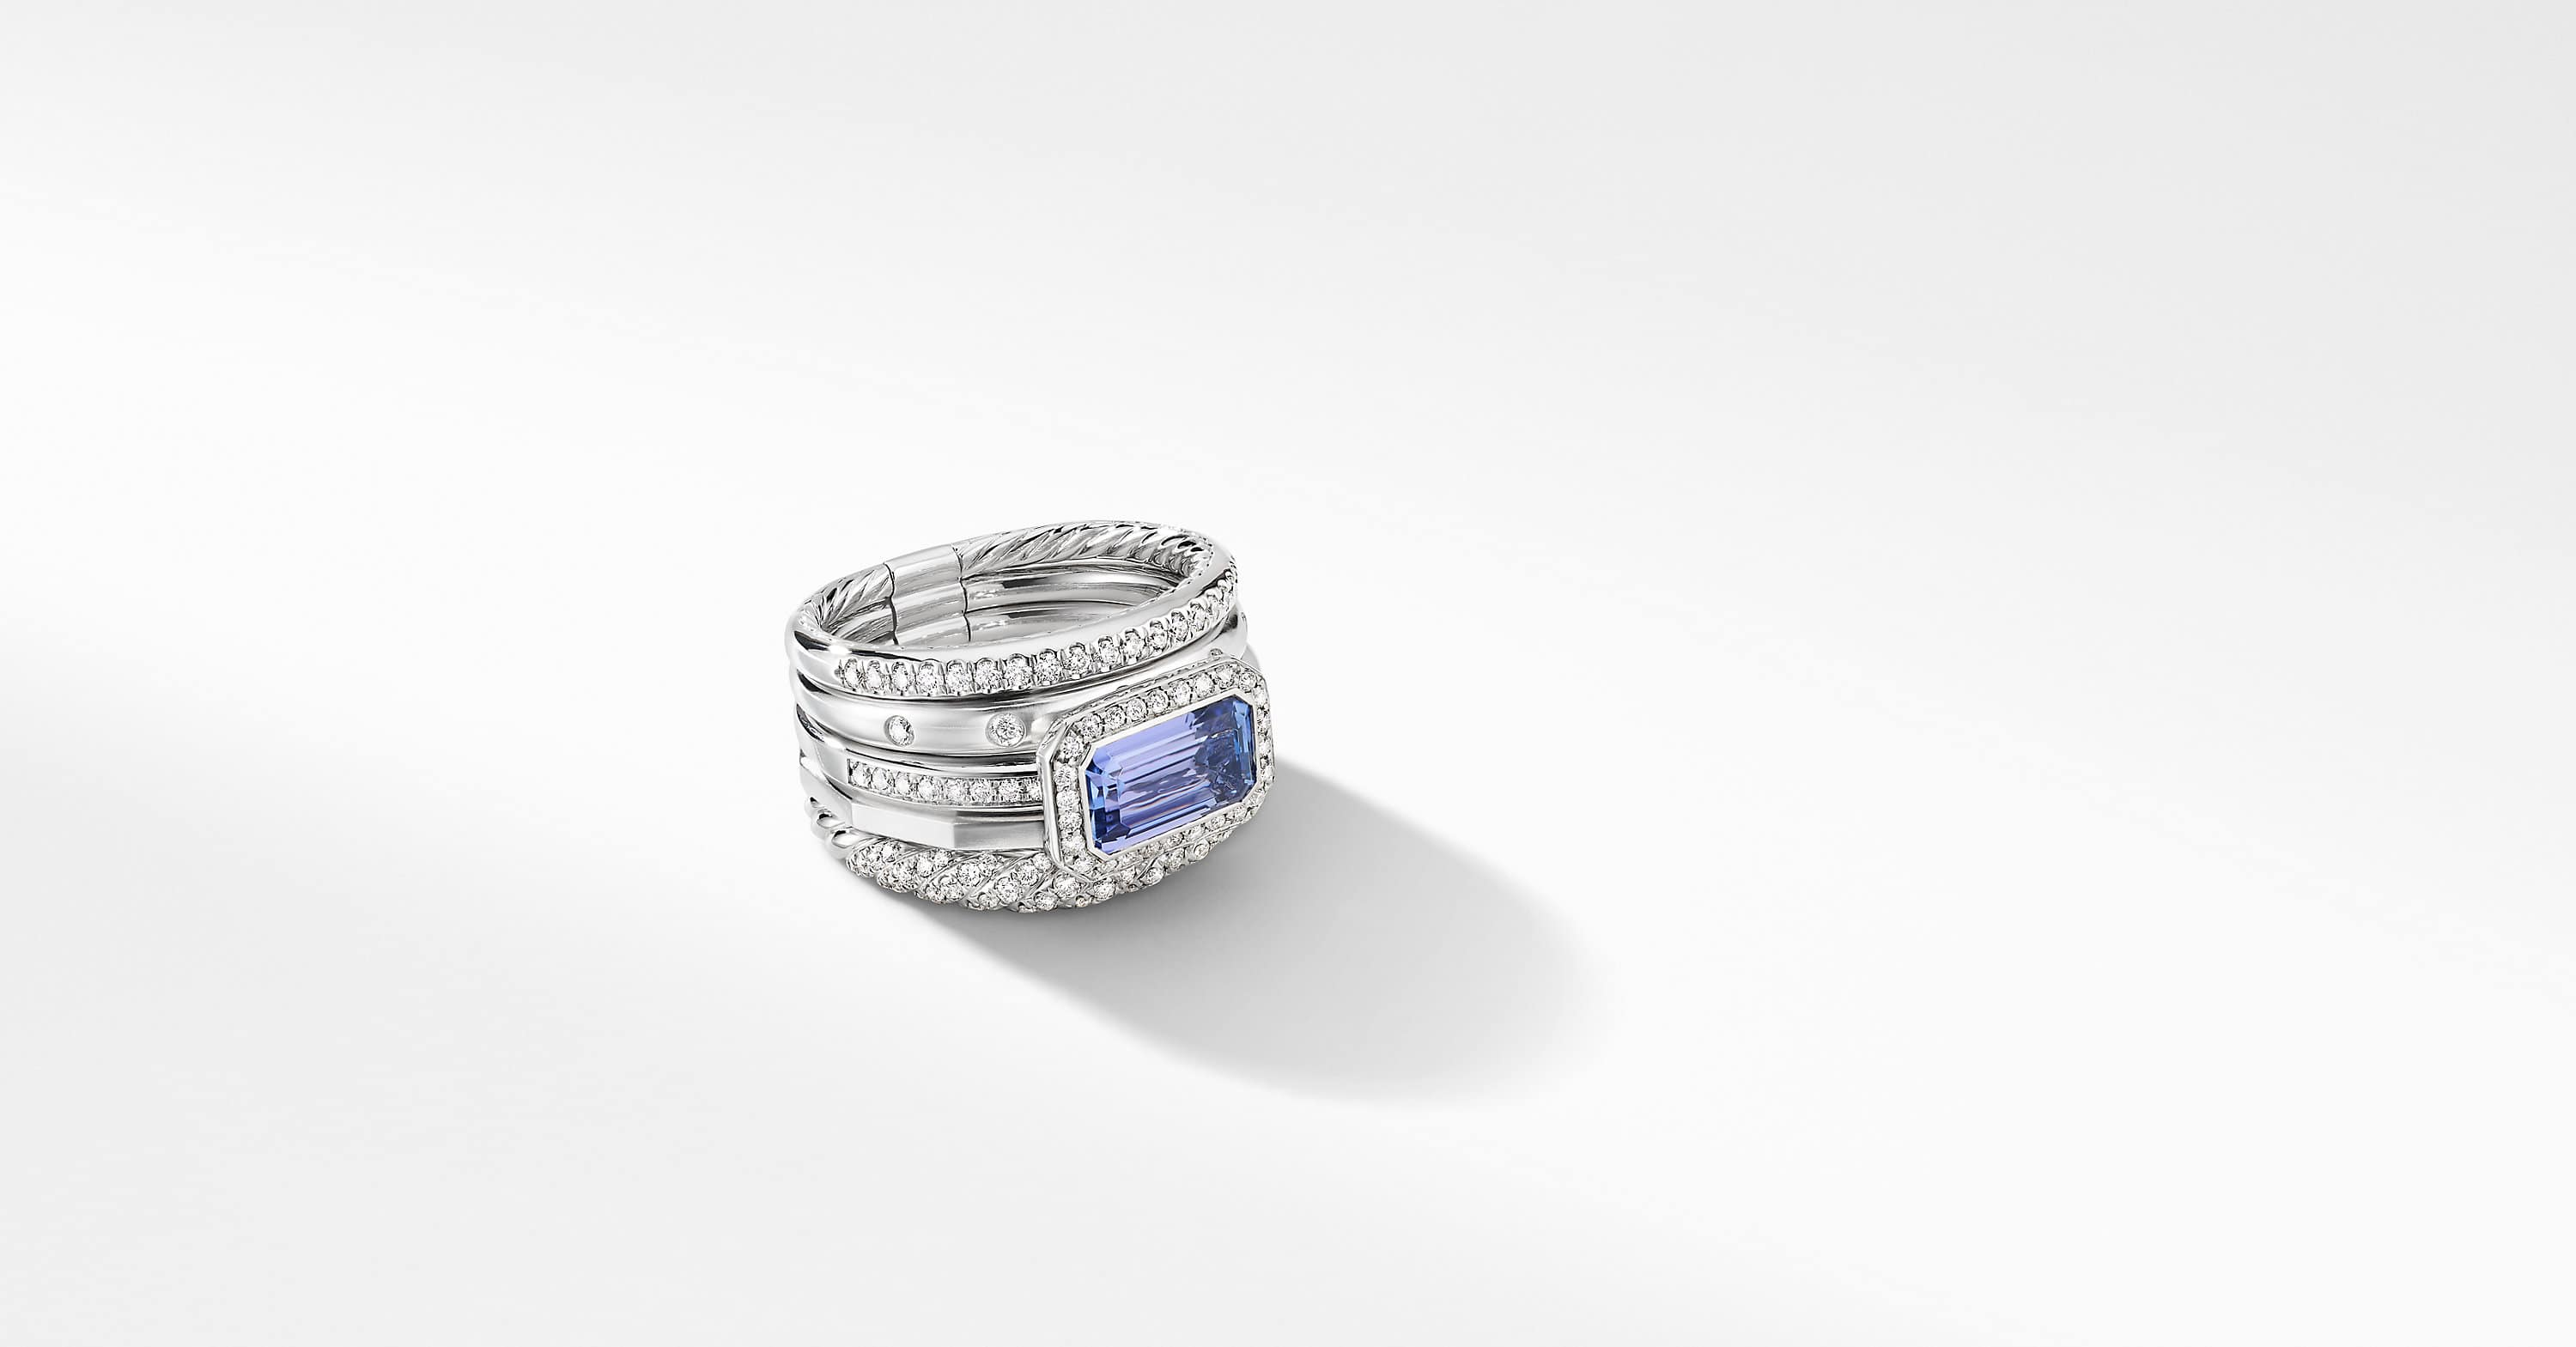 Stax Statement Ring in 18K White Gold with Diamonds